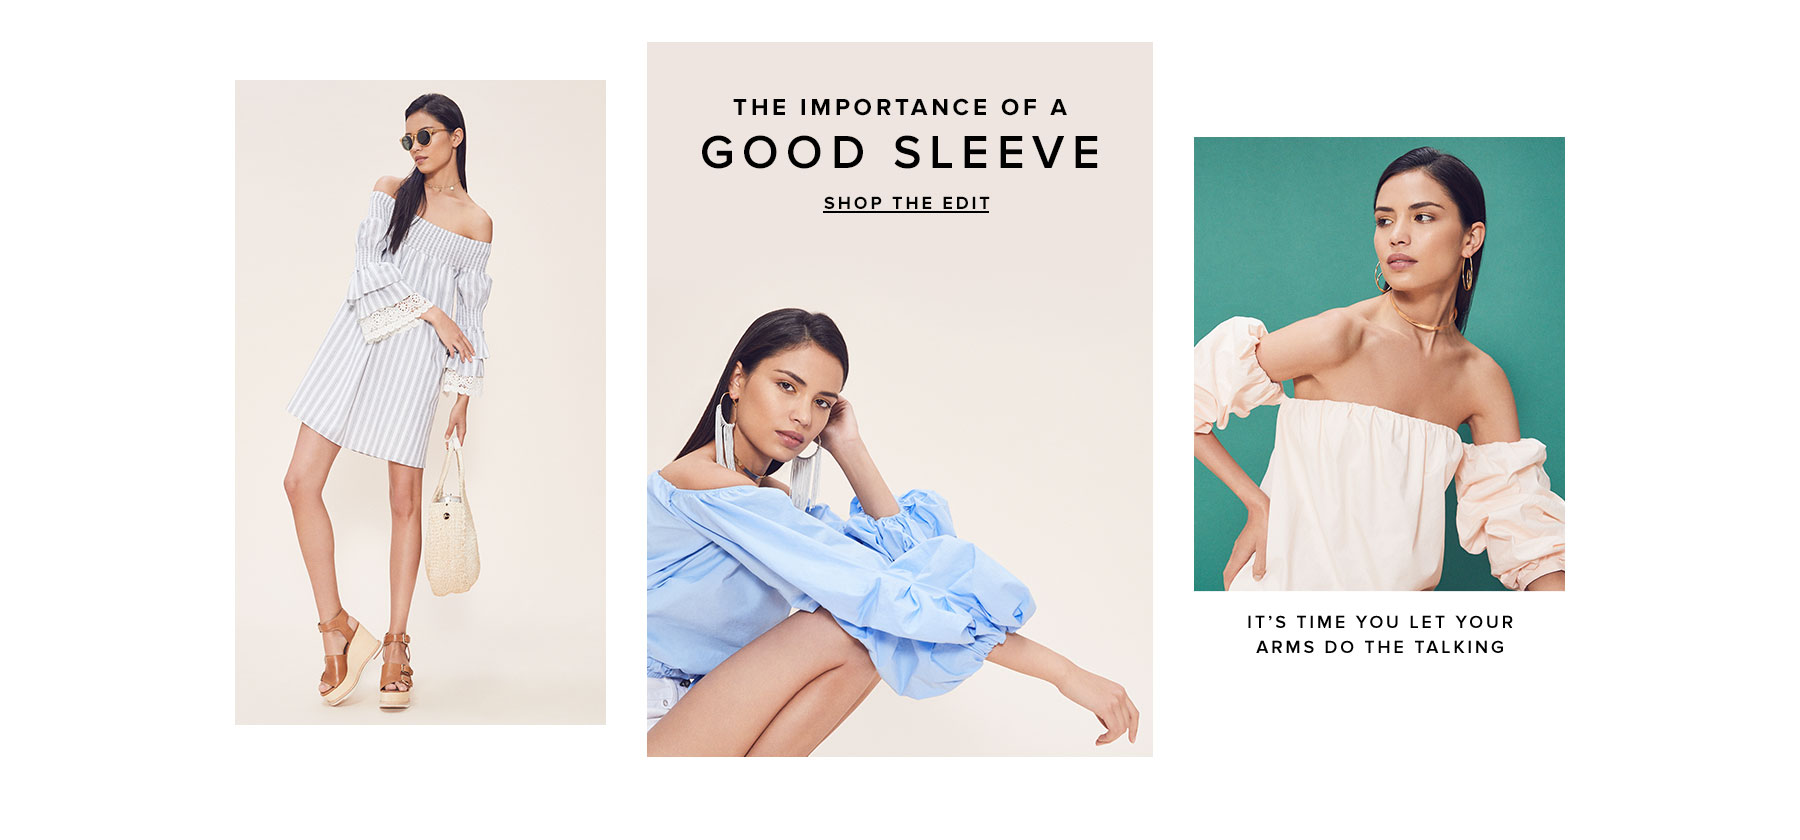 The Importance of a Good Sleeve. It's time you let your arms do the talking. Shop the Edit.